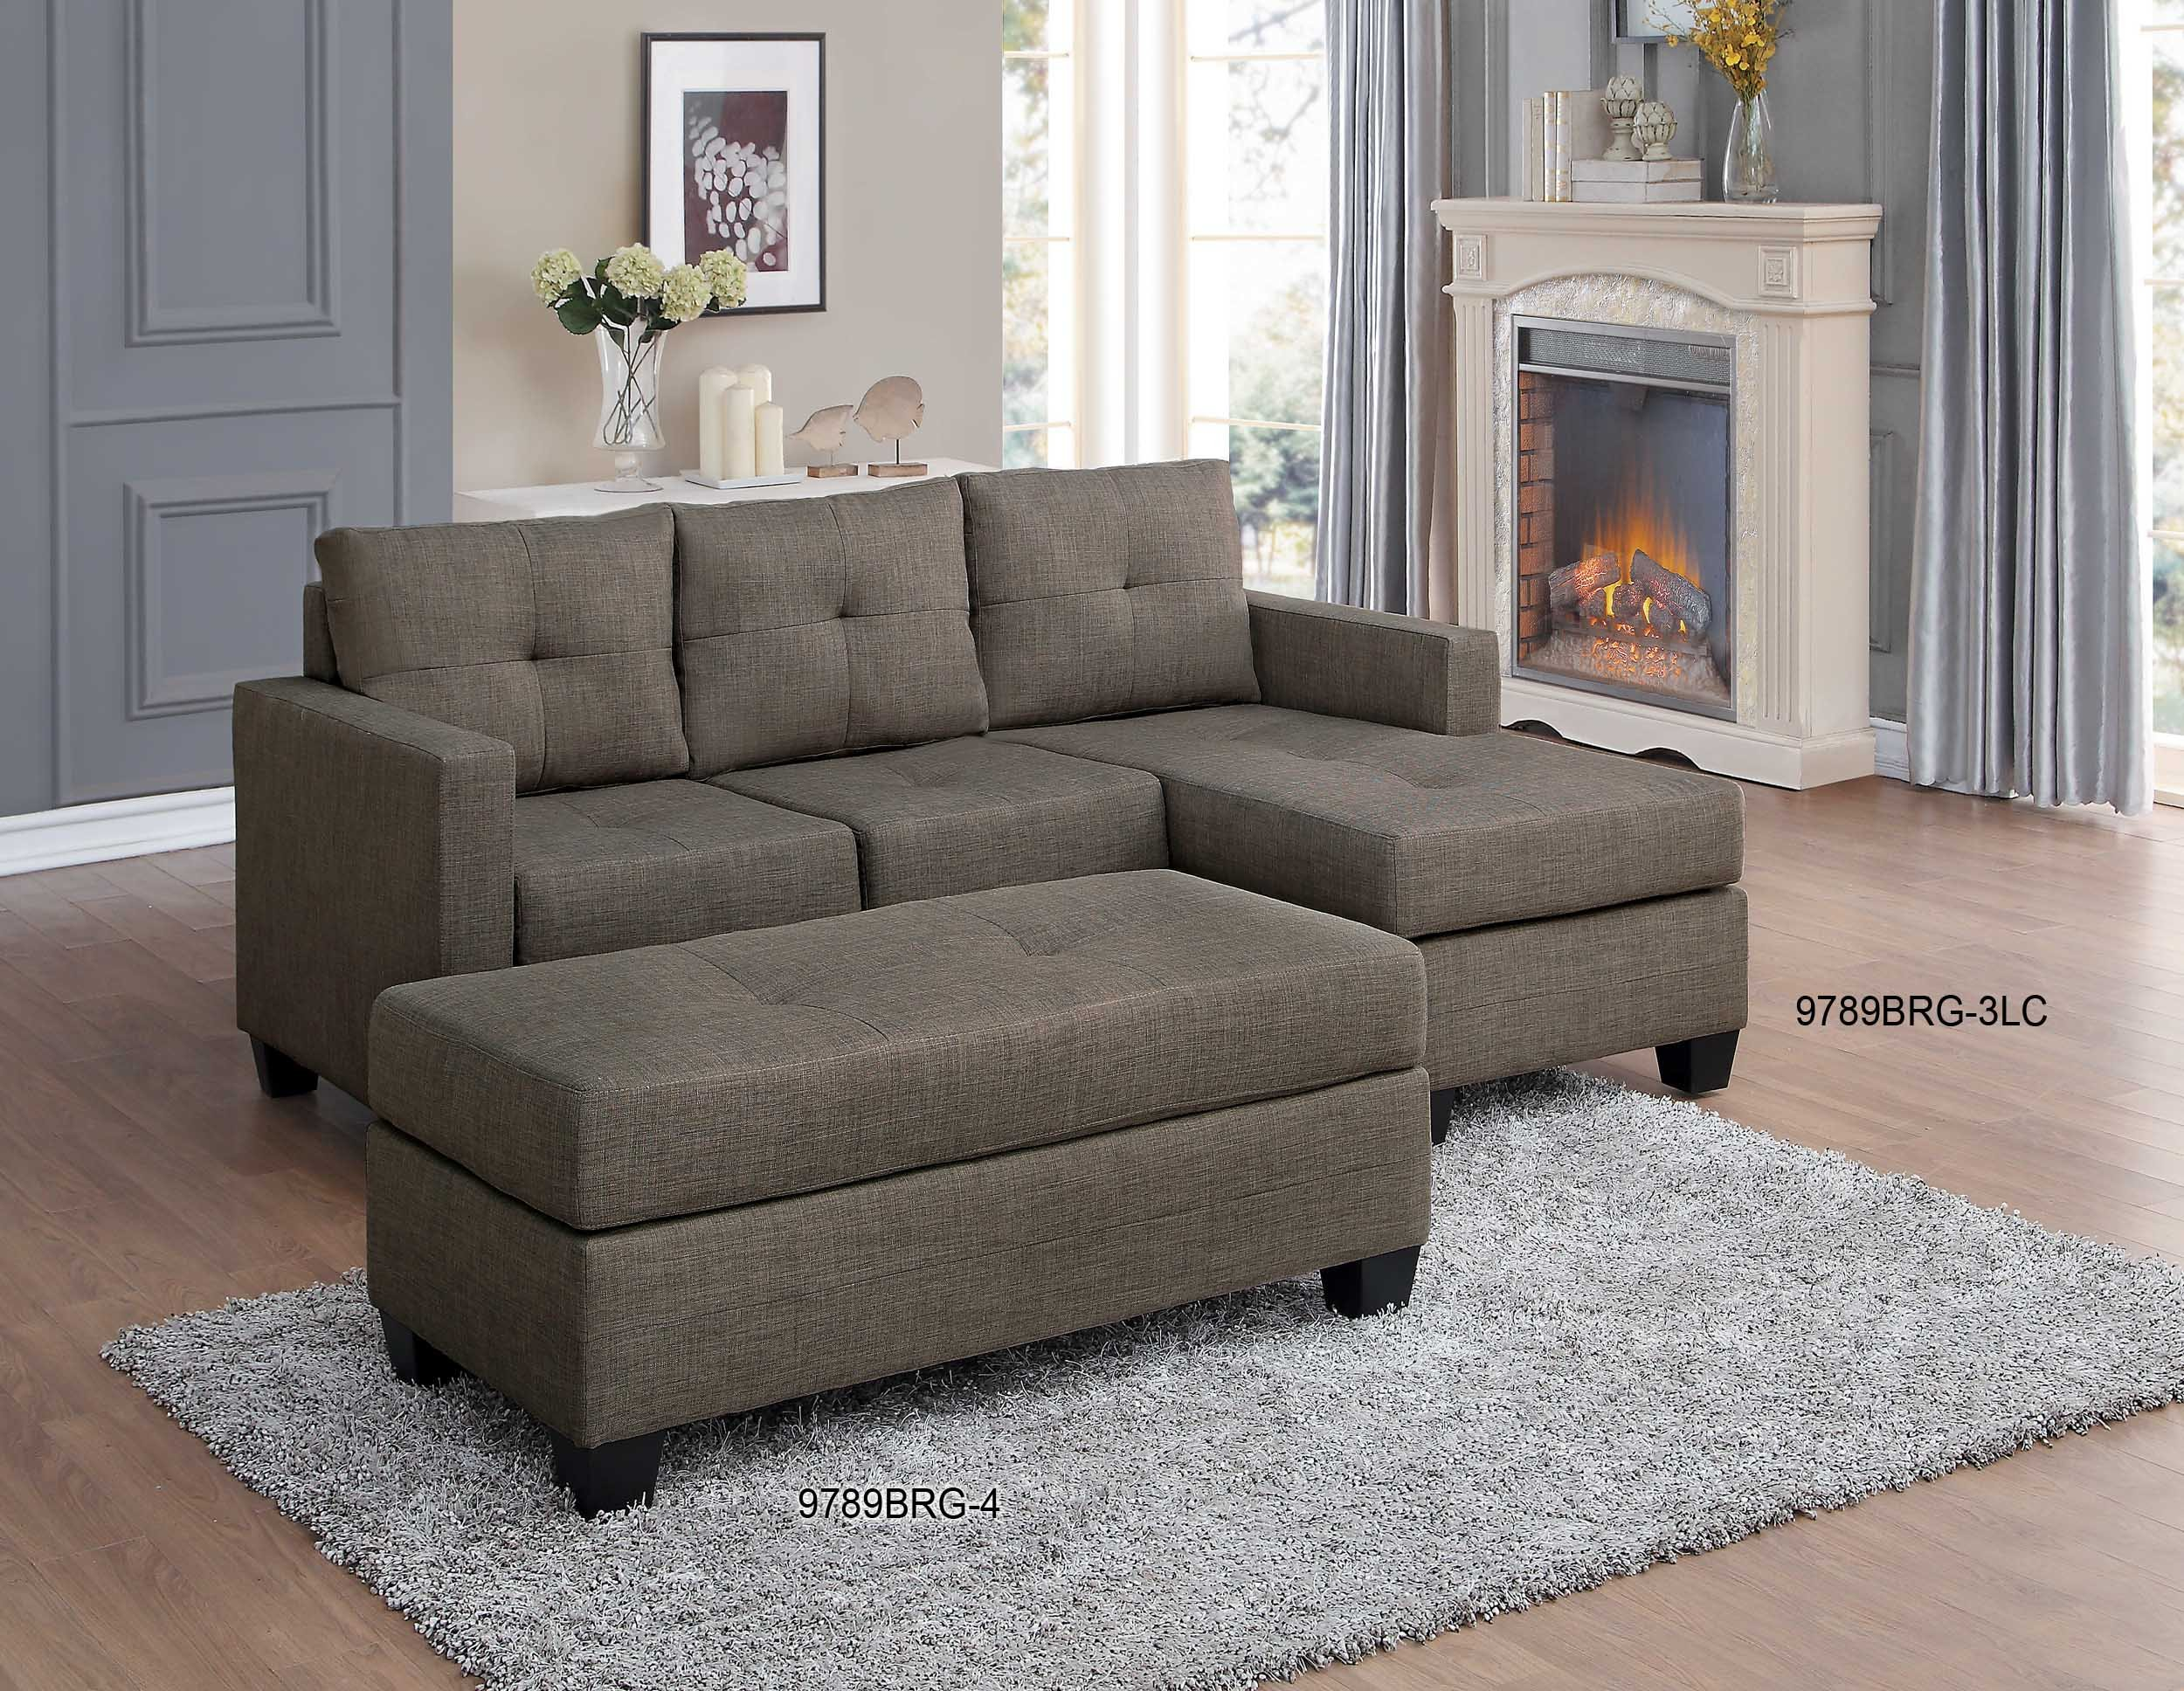 Homelegance Phelps Contemporary Microfiber Sectional Sofa with